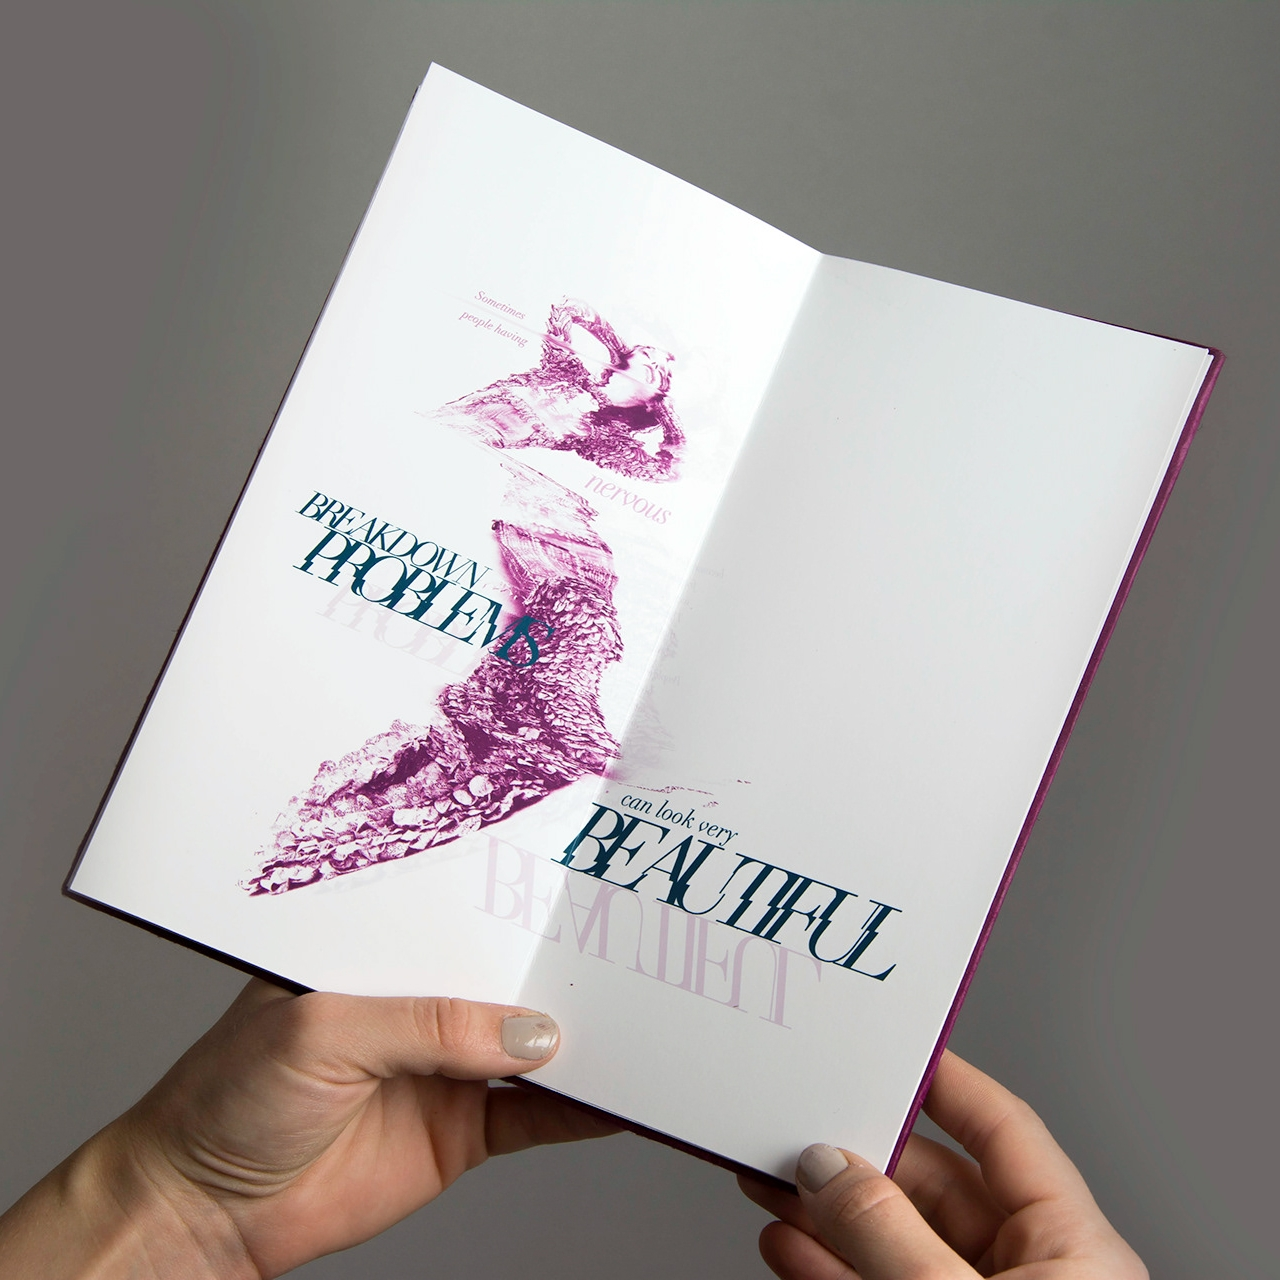 Typographic Book Layouts - Pushing Typographical Boundaries